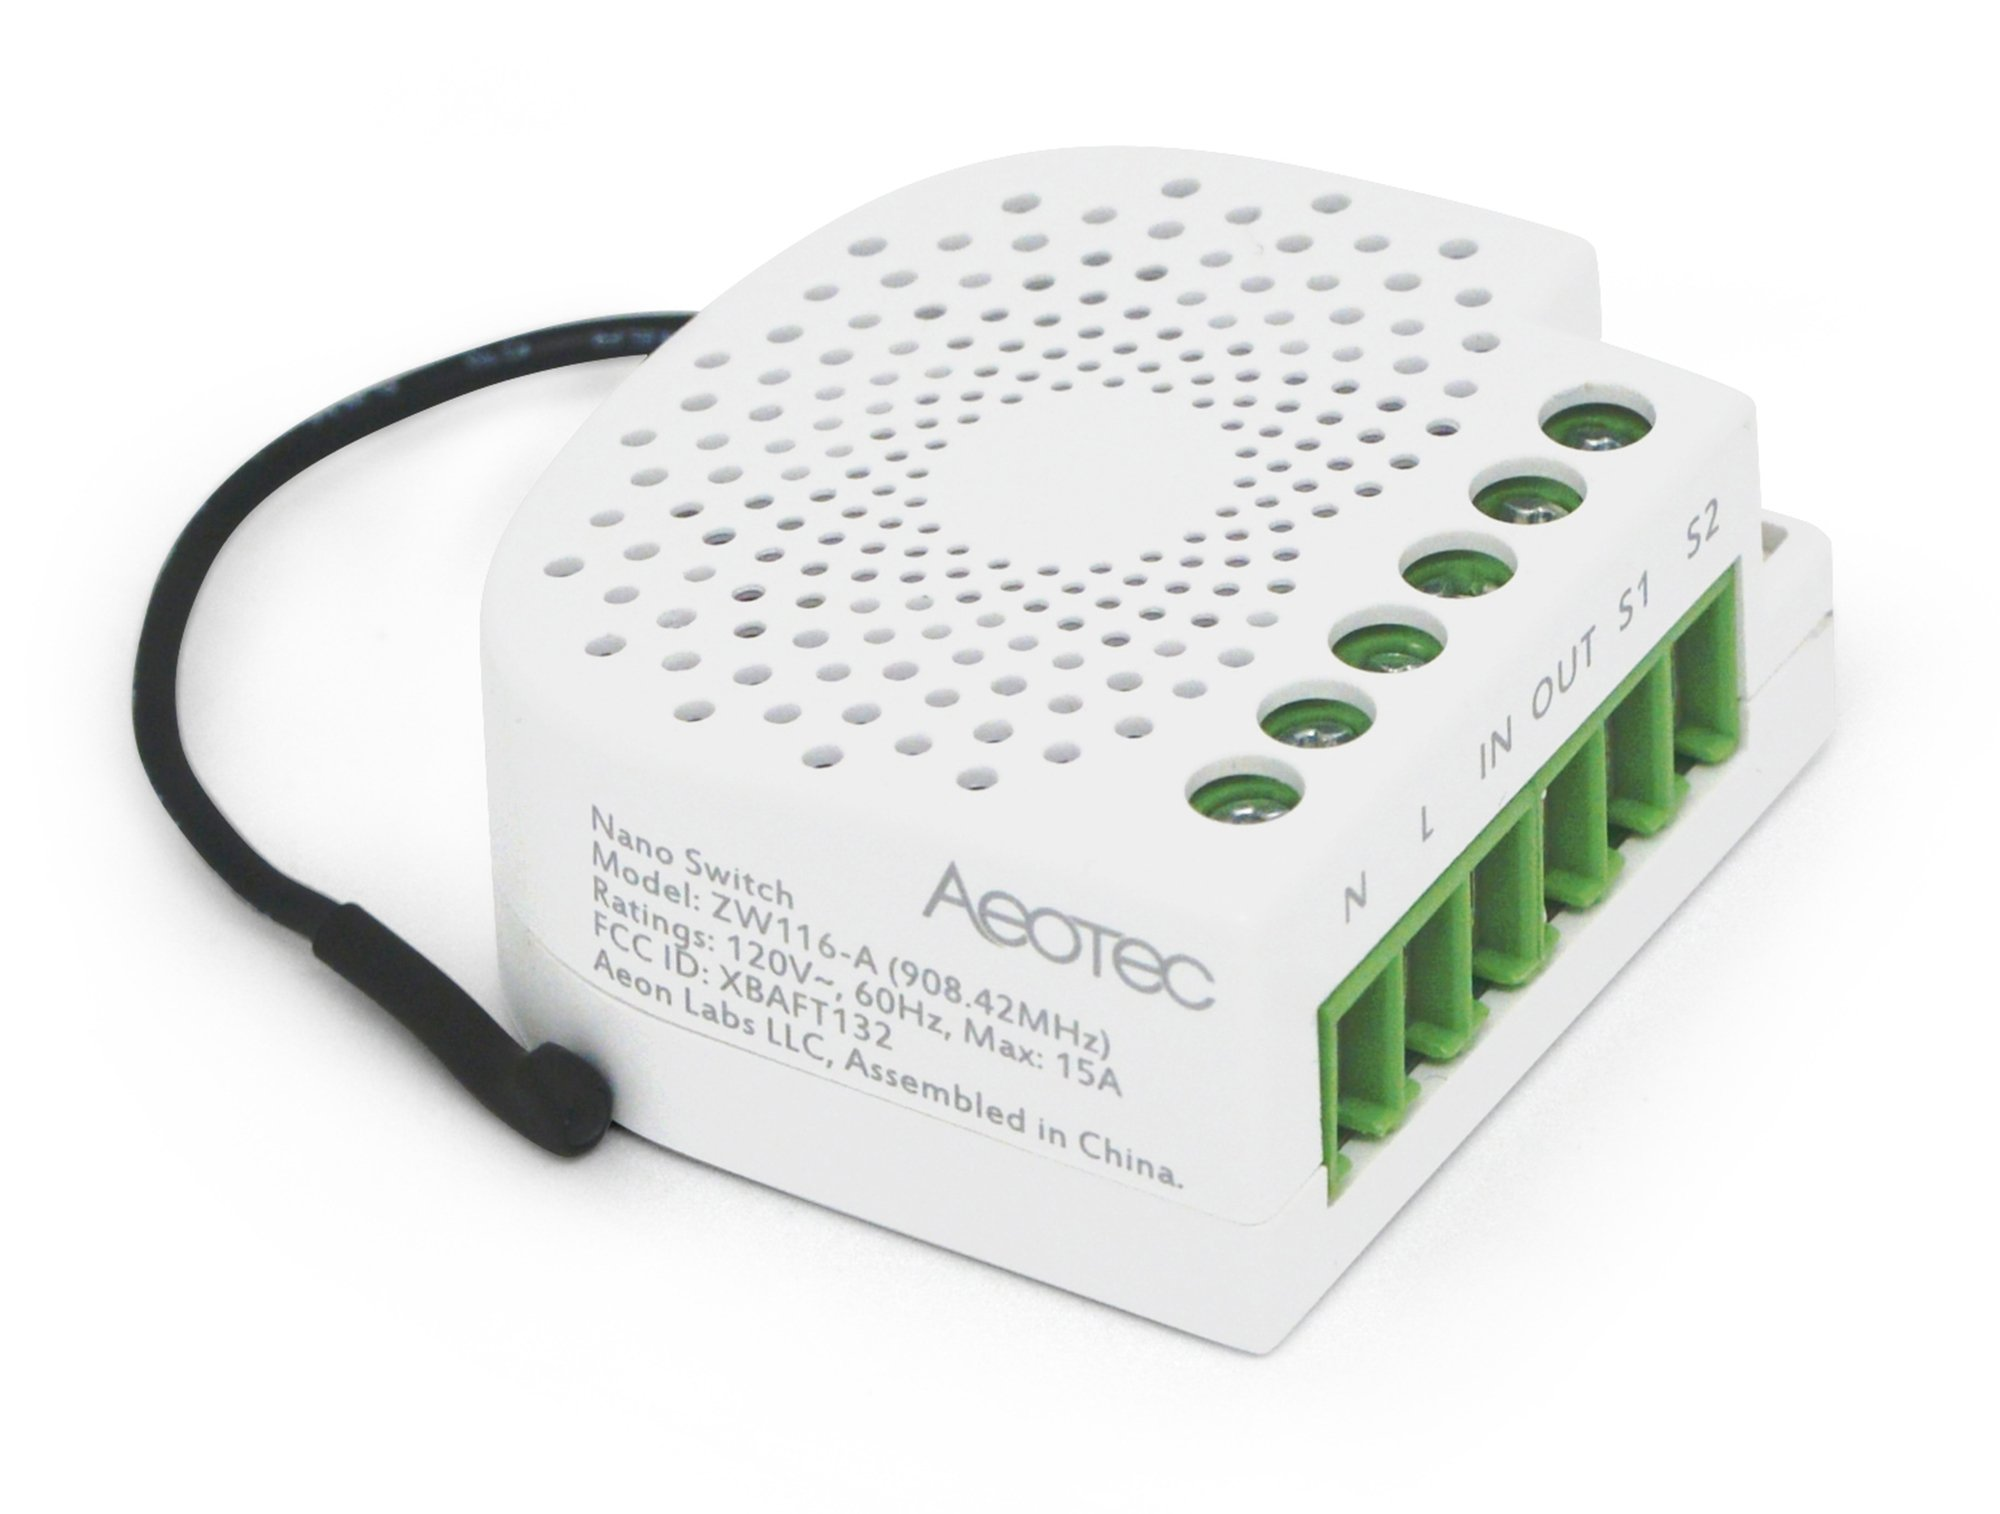 Aeotec Nano Switch on / off controller with power metering, Z-Wave Plus, In-wall, Compatible with Alexa by Aeotec (Image #4)